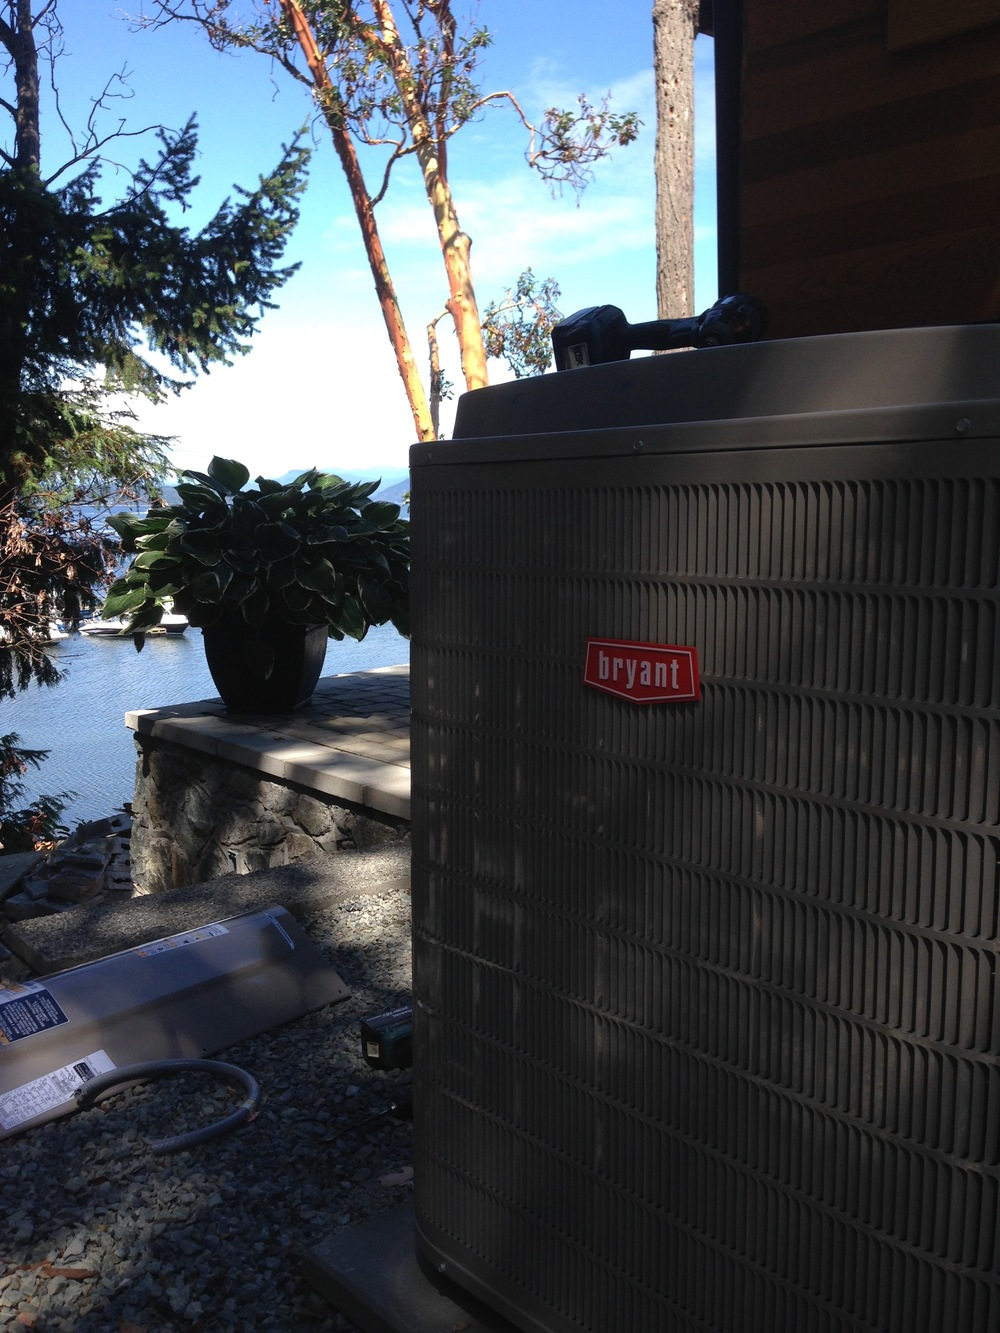 Heat Pump hook up with a great view!